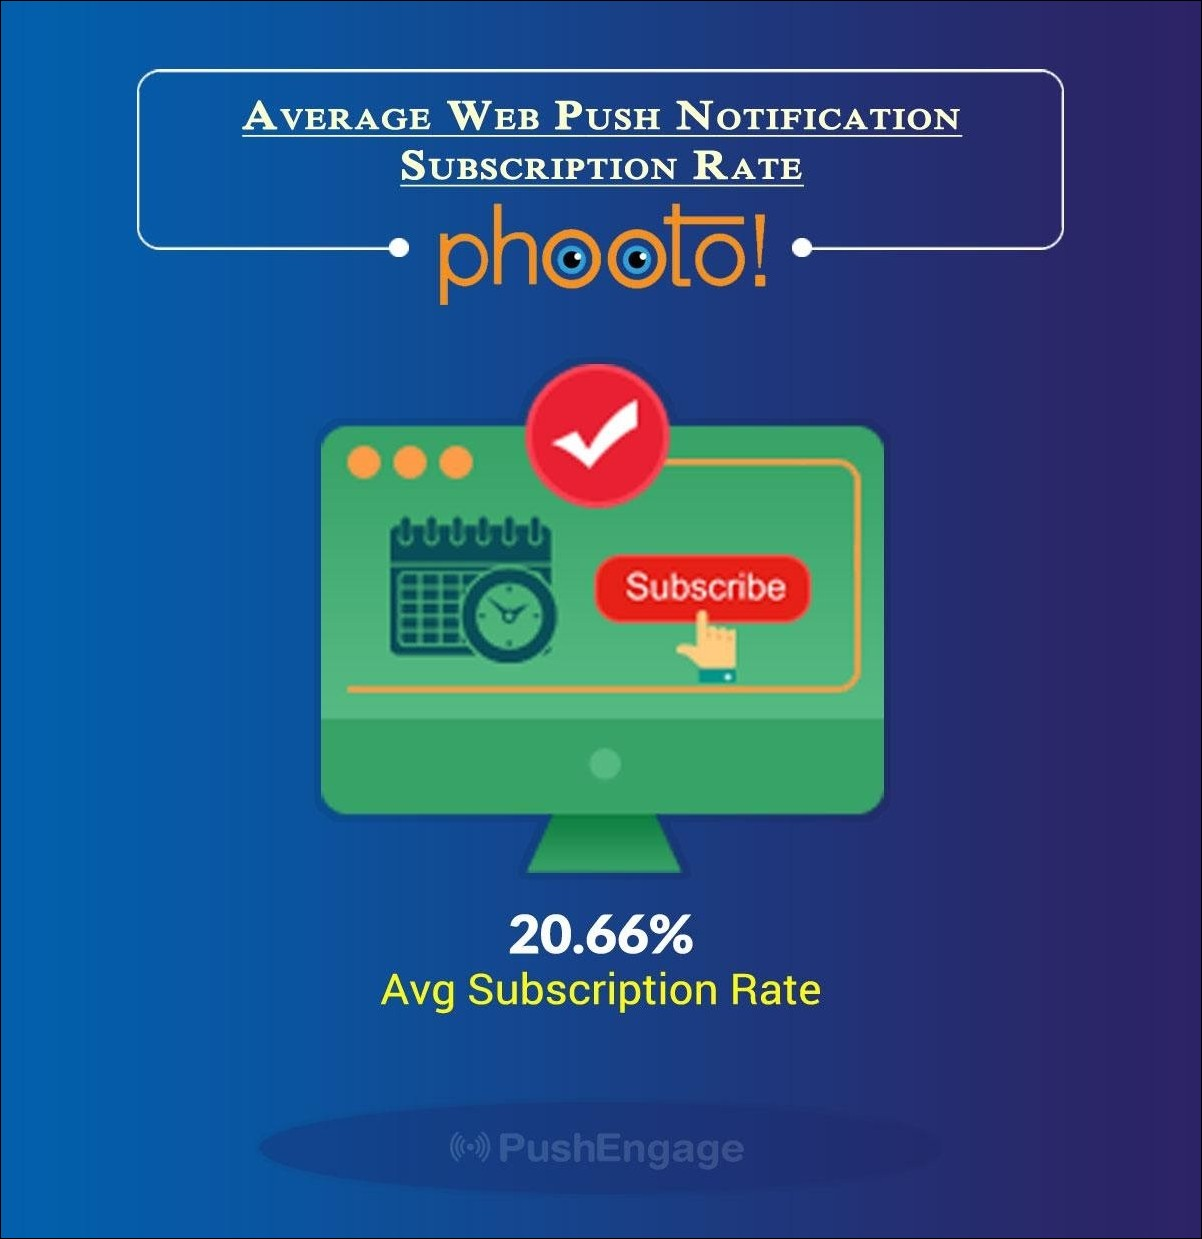 5 Tips To Boost Your Subscription Rate Using Web Push Notifications